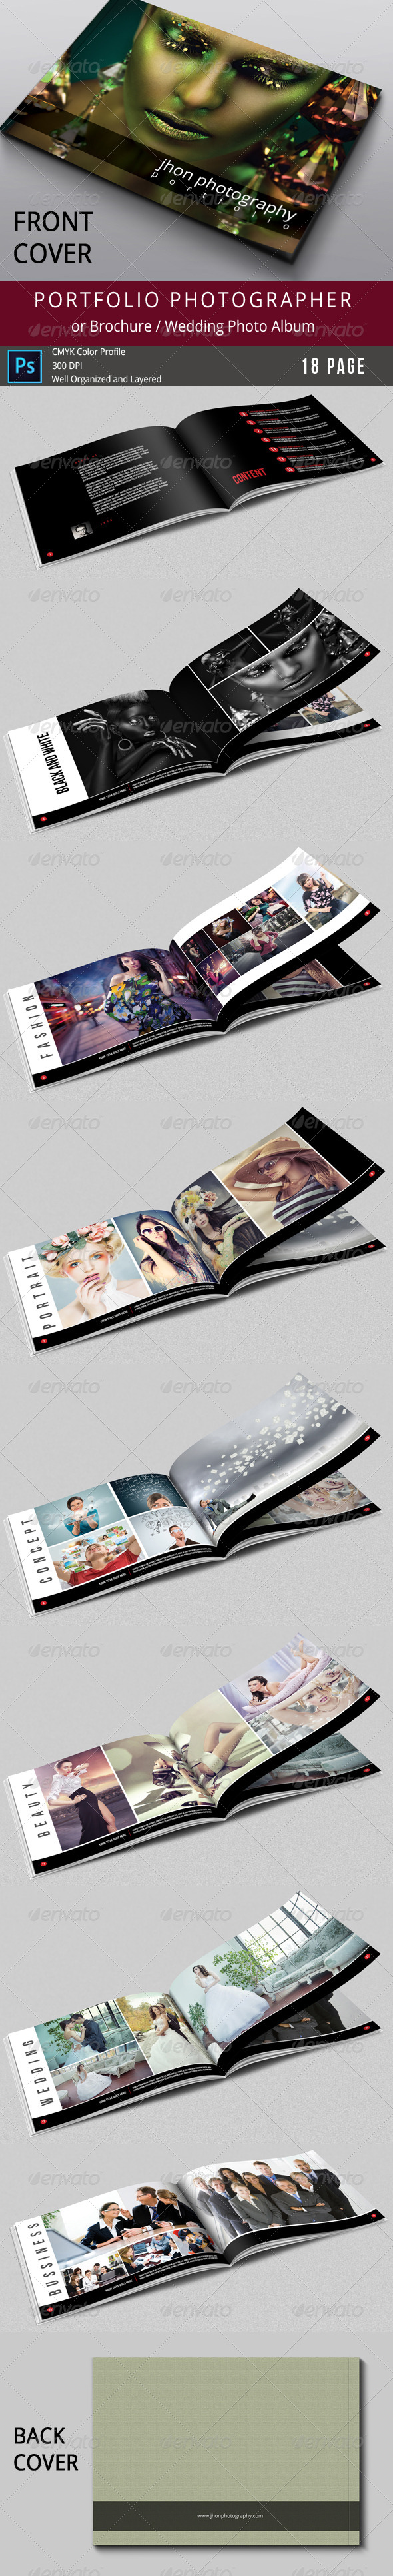 GraphicRiver 18 Pages Photography Portfolio or Wedding Album 7883825